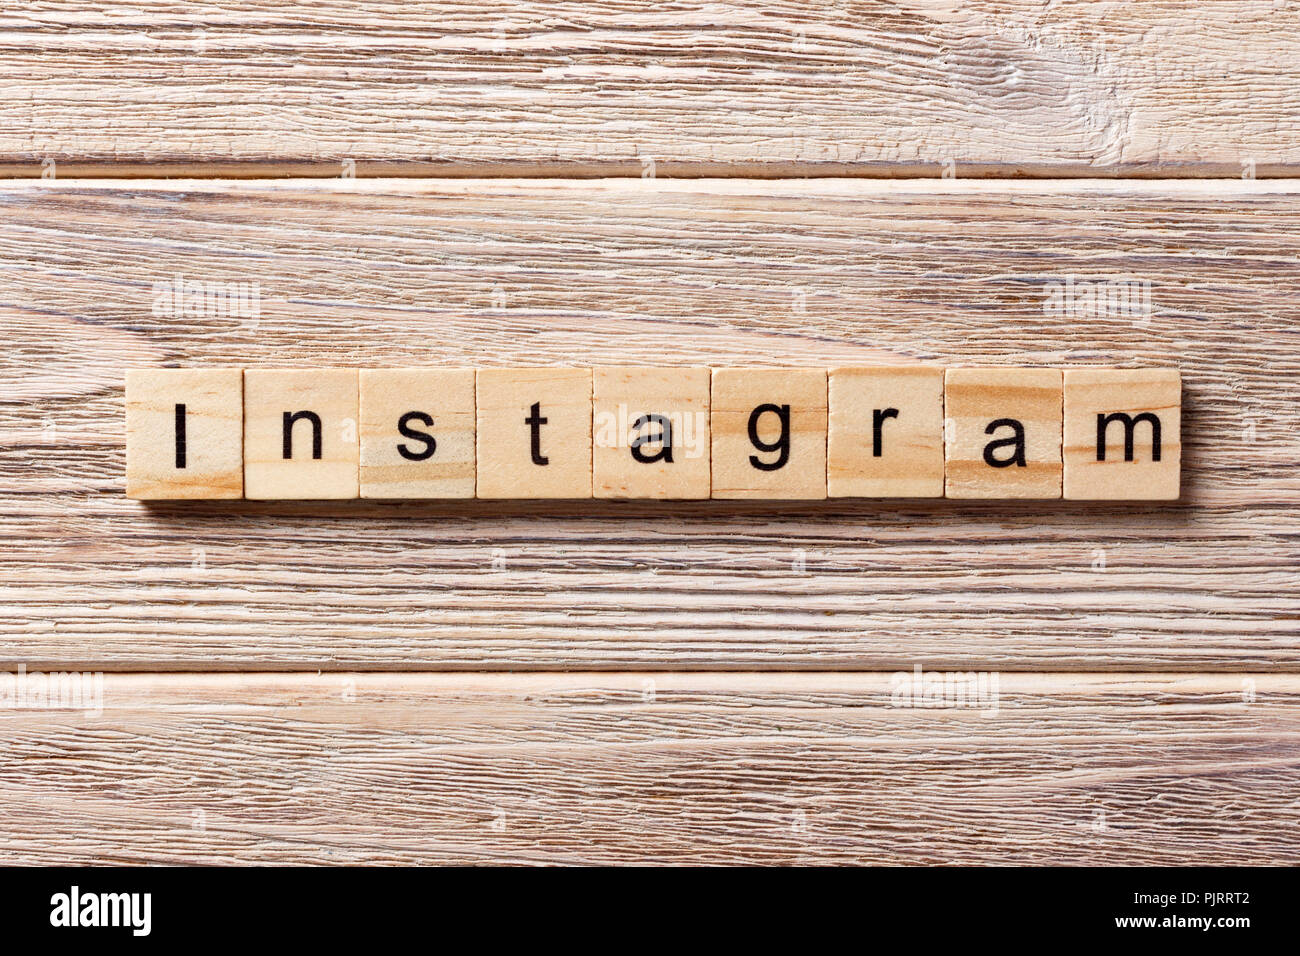 Instagram word written on wood block. Instagram text on table, concept. - Stock Image